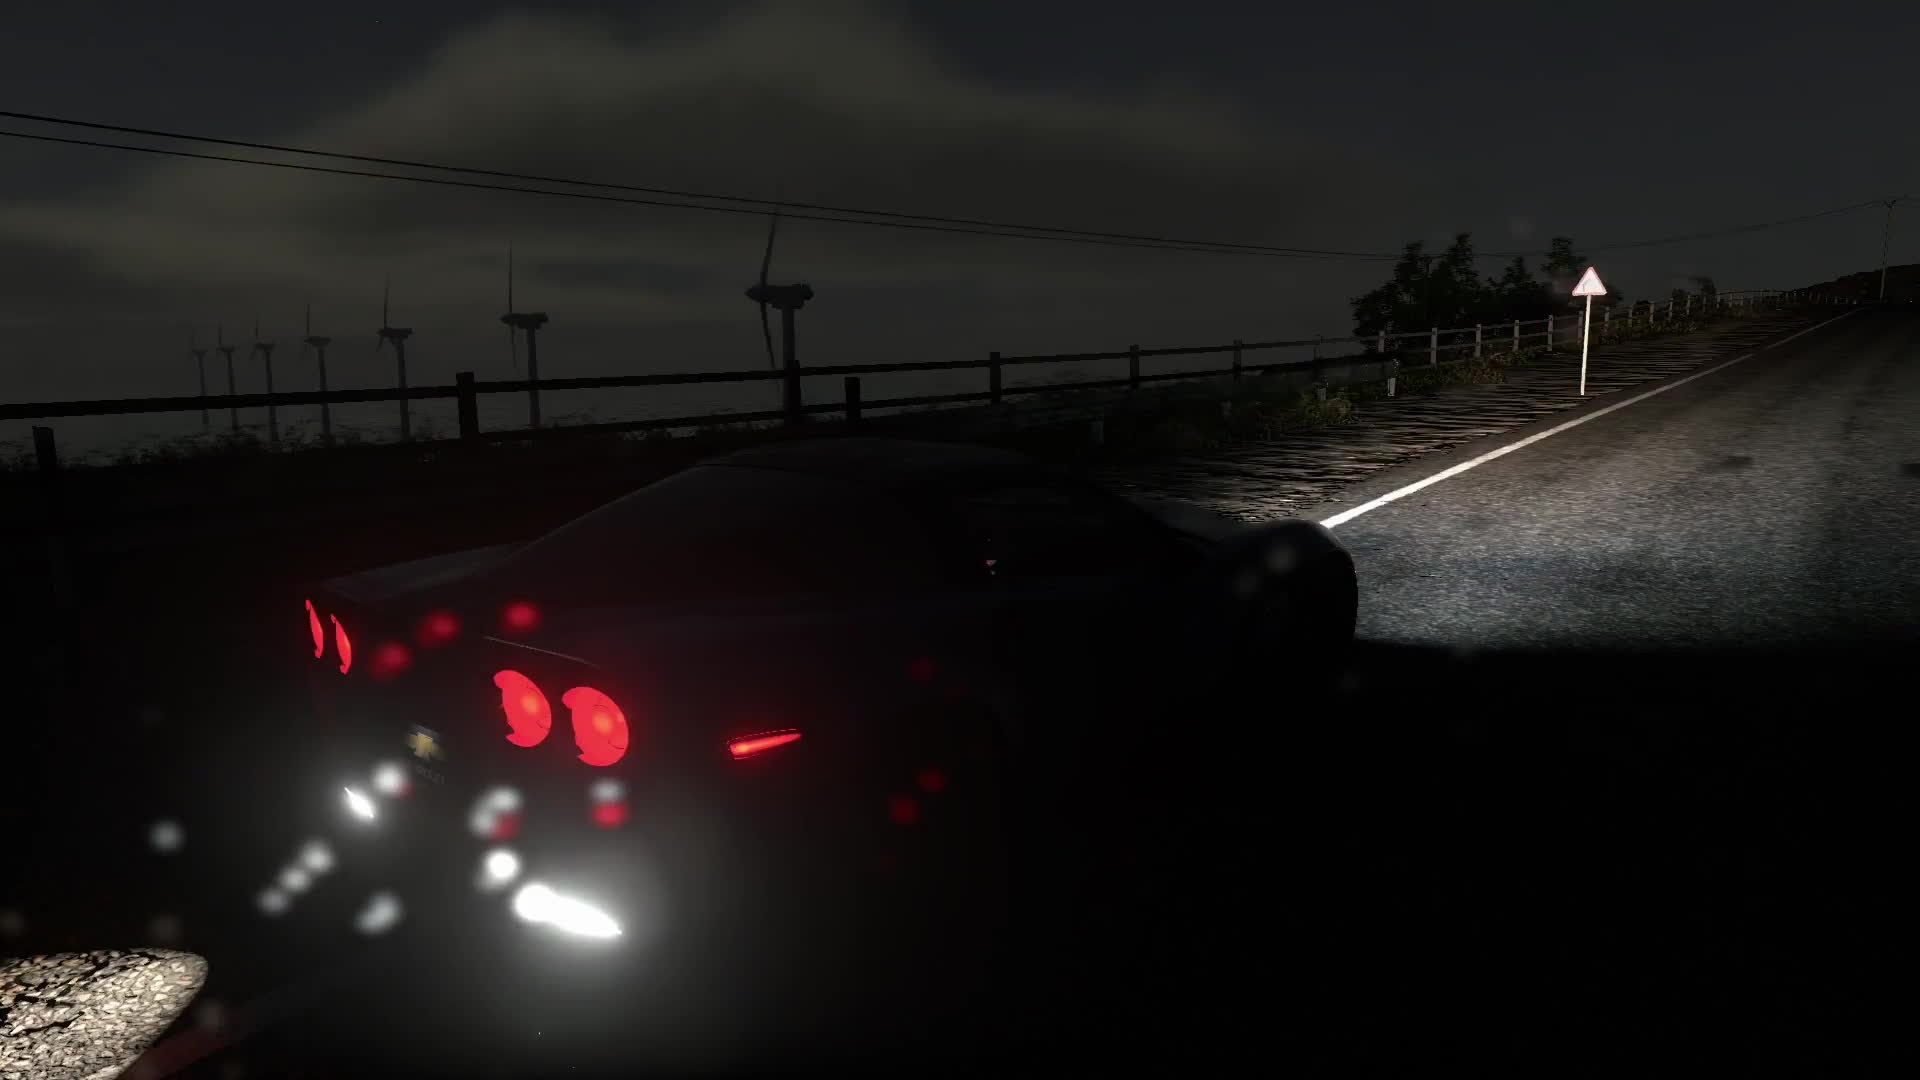 driveclub, playstation 4, ps4share, sony interactive entertainment, Driveclub #2 GIFs